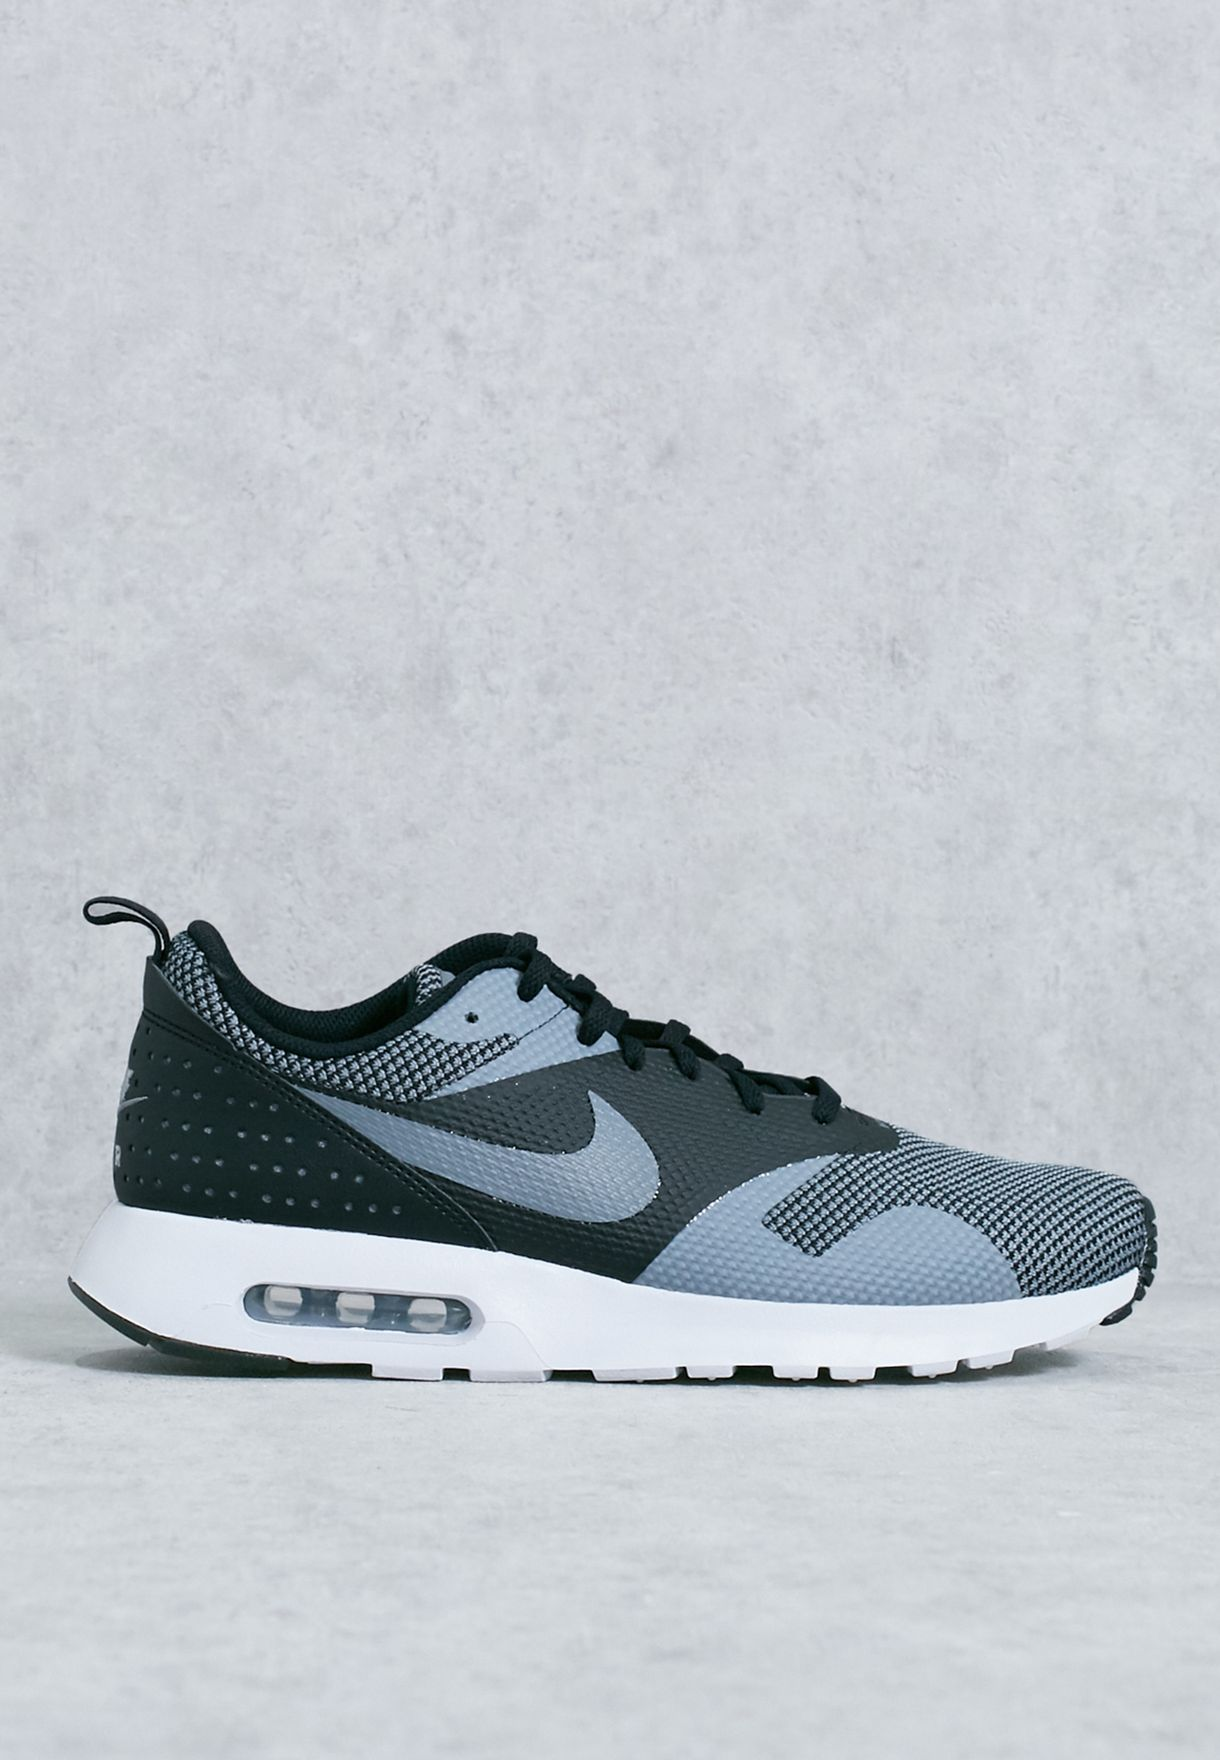 premium selection d5d6e bc213 Air Max Tavas Premium